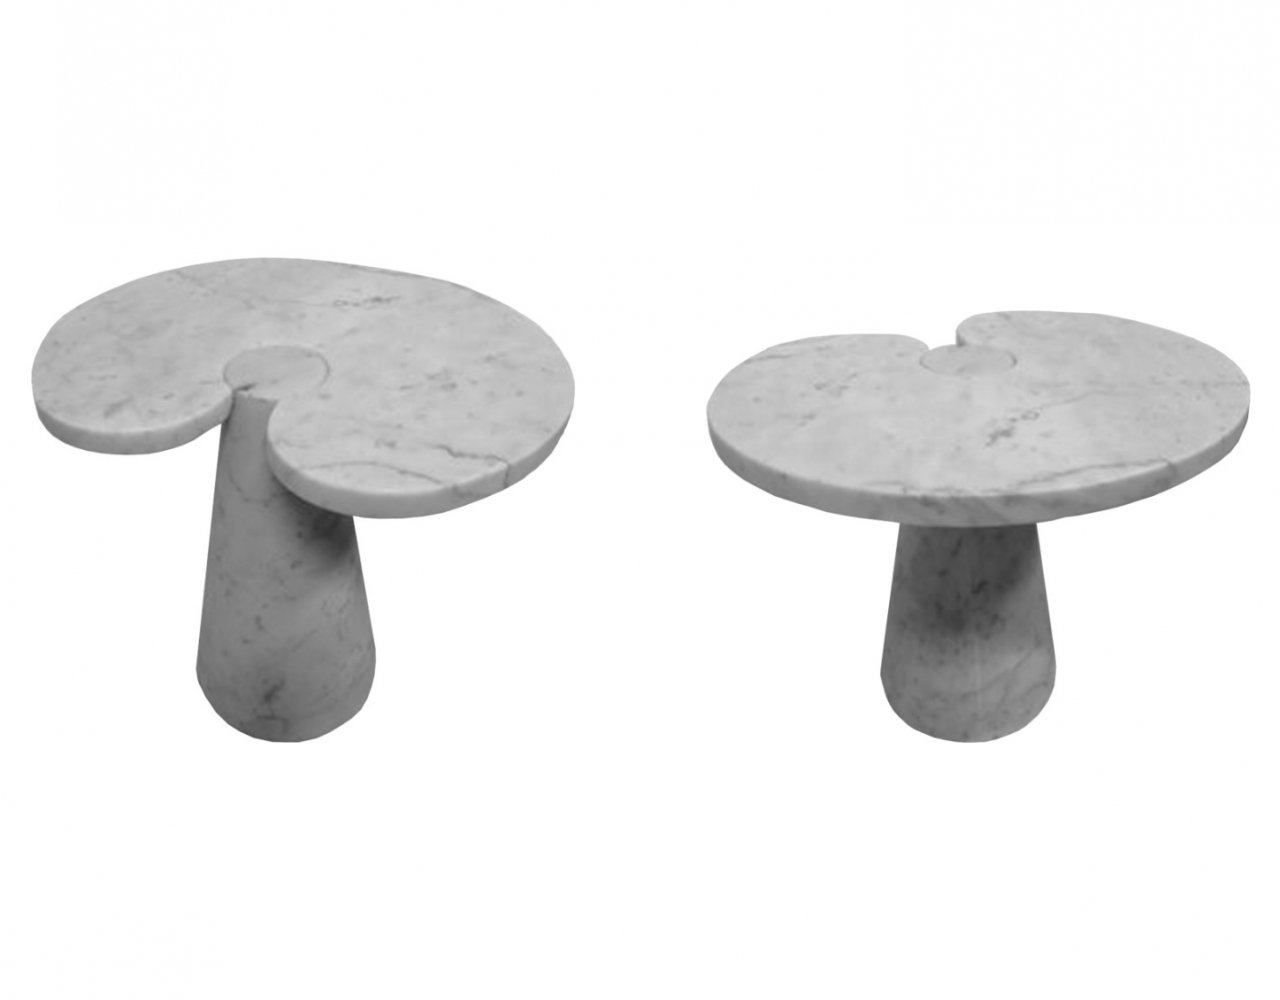 Pair of Eros side tables by Angelo Mangiarotti for Skipper Italy, 1970s